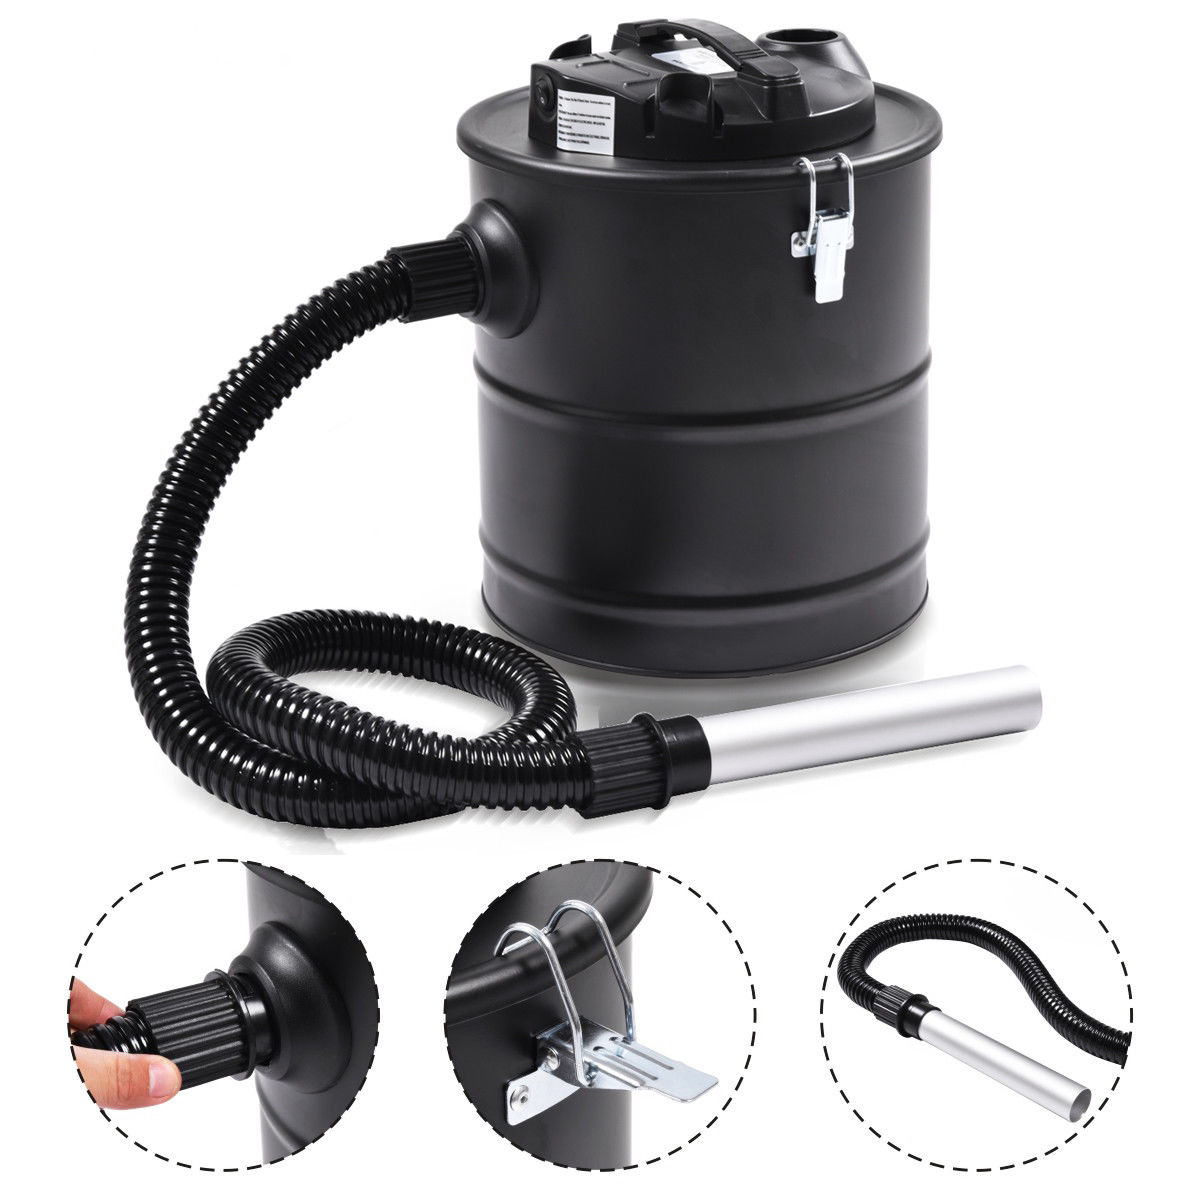 Costway 5.3 Gallon 1000W Ash Vacuum Cleaner For Fireplaces Stove BBQ Wet Dry Dust